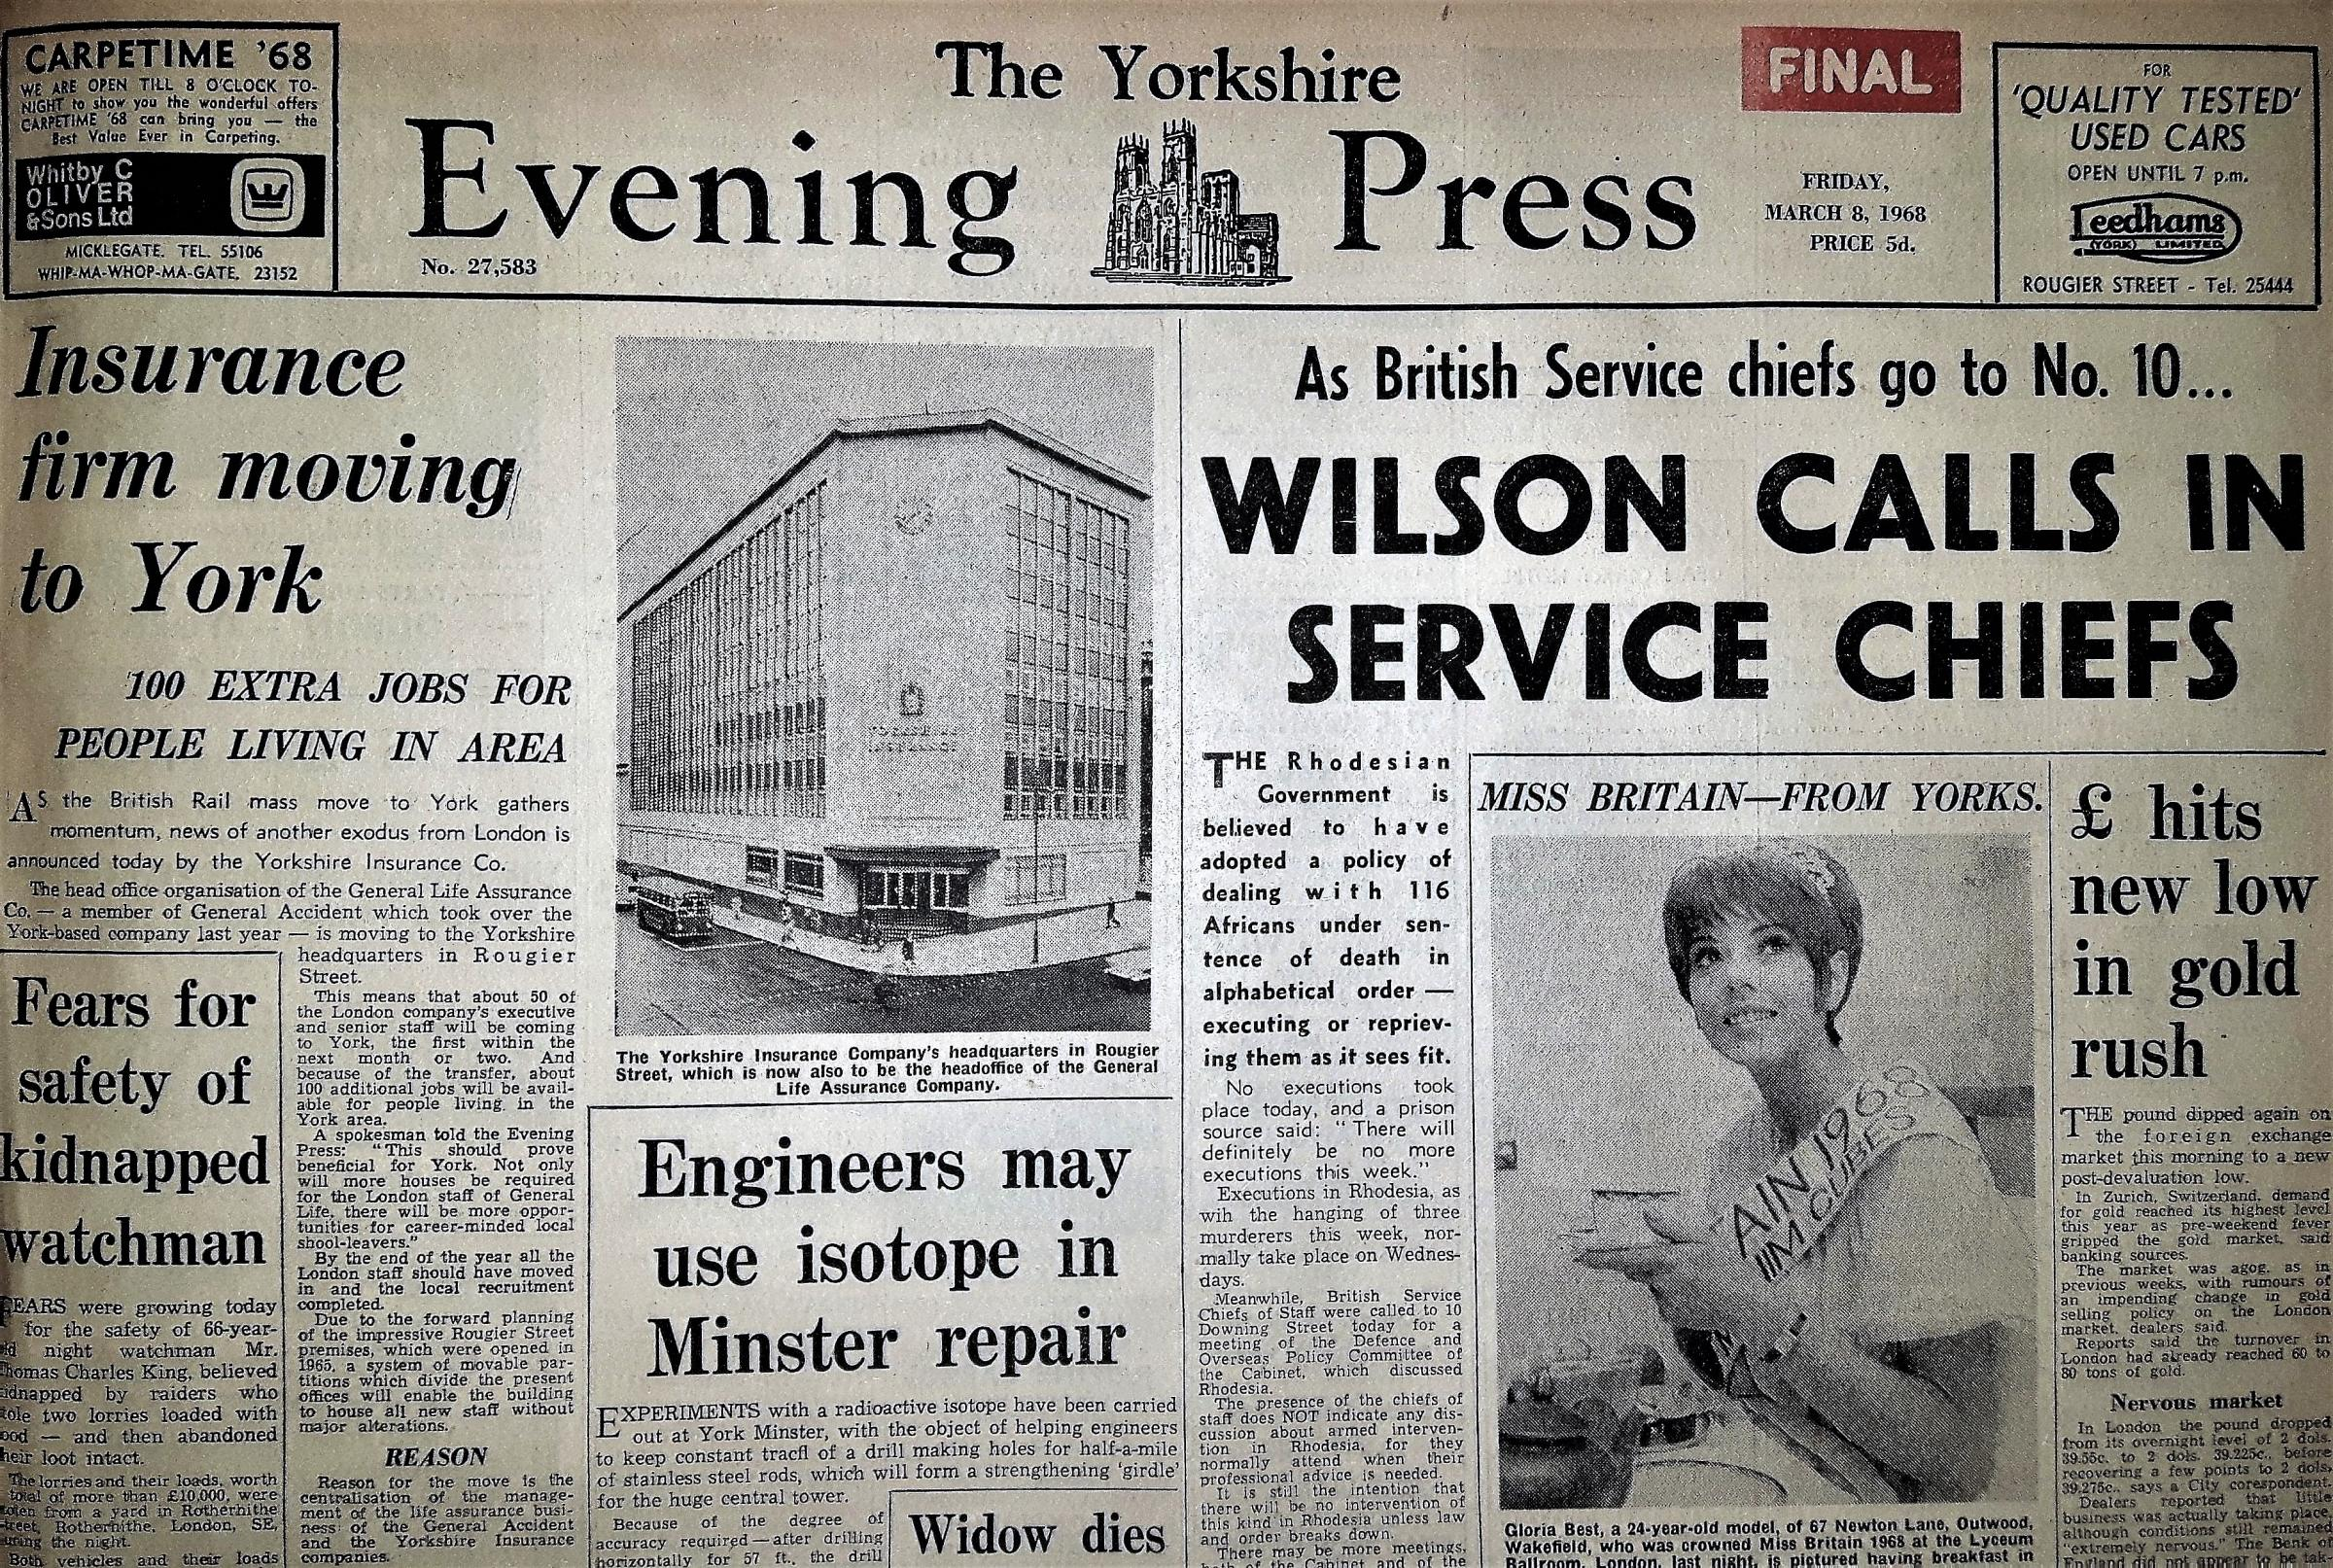 The front page of the Yorkshire Evening Press from March 8, 1968